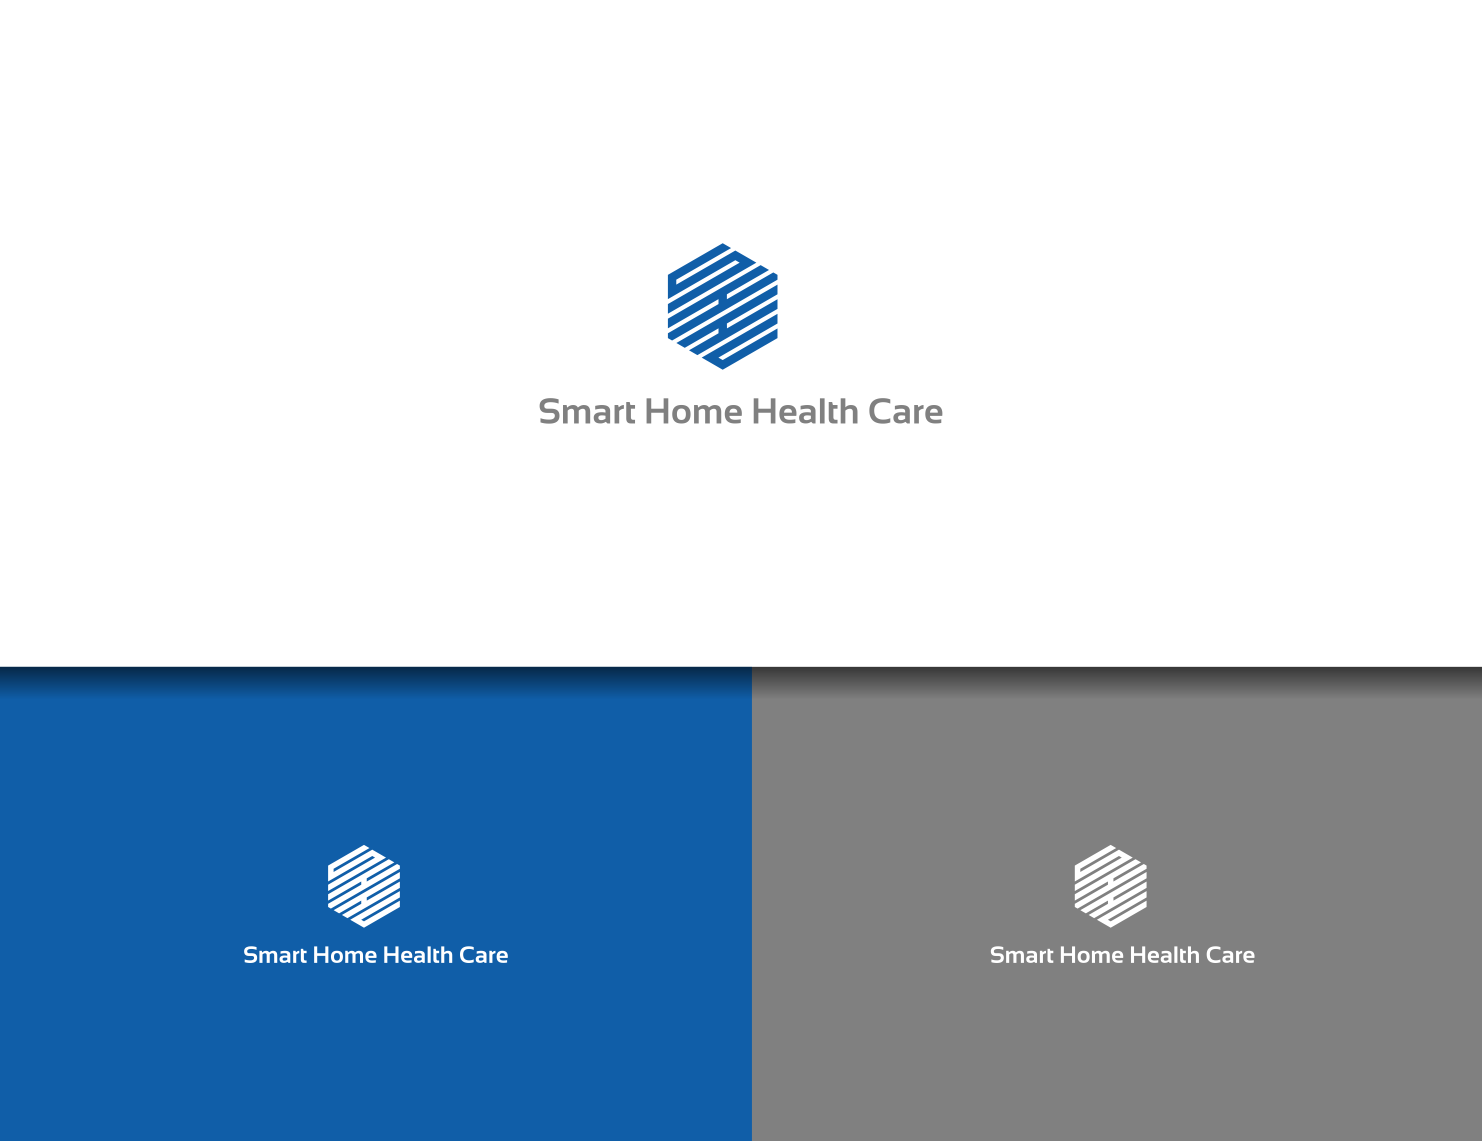 Logo Design For Smart Home Health Care By Yogodonald